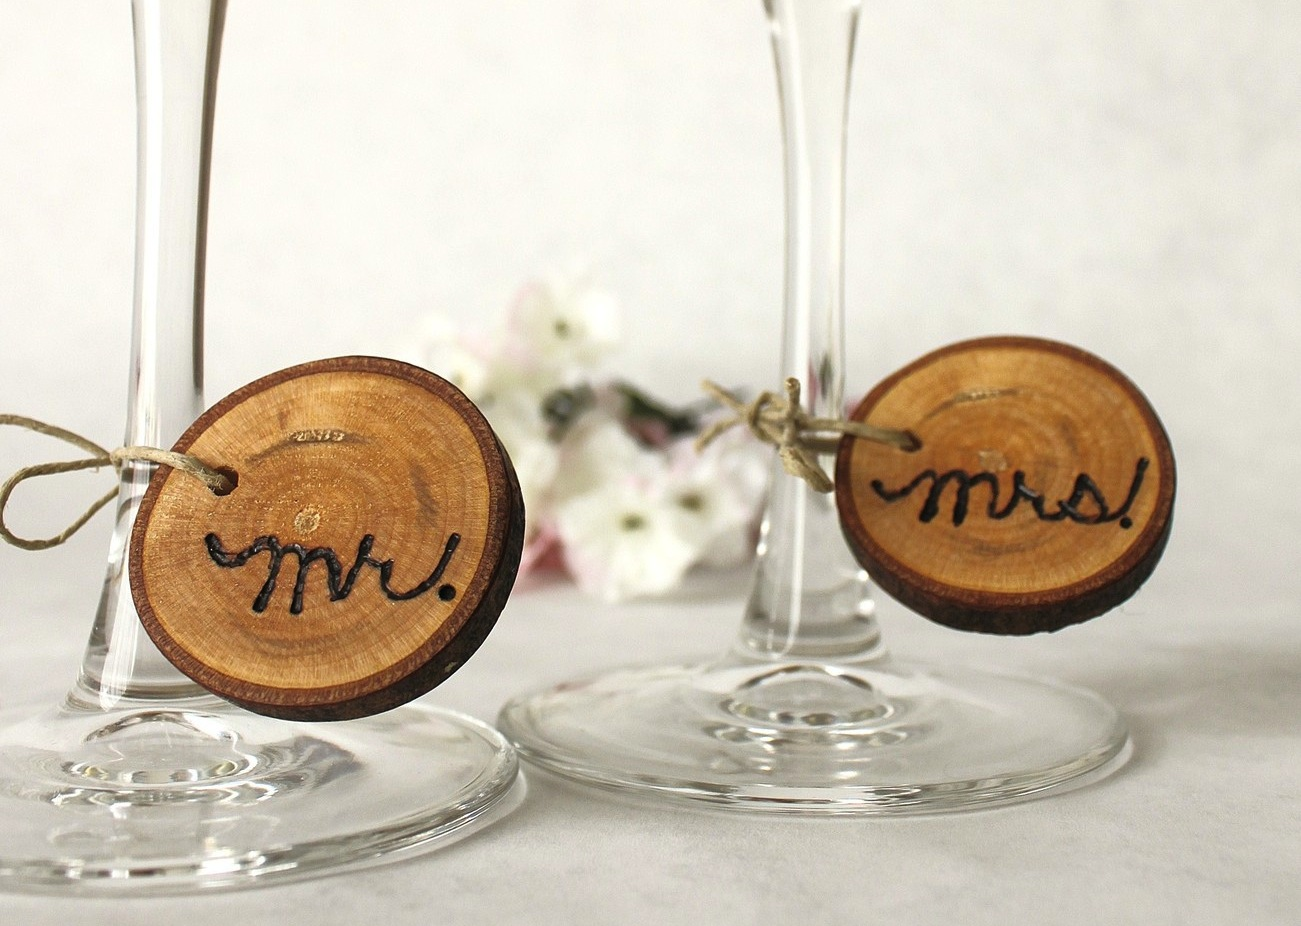 creative wedding ideas from Etsy Mr and Mrs decor rustic ... - photo#32